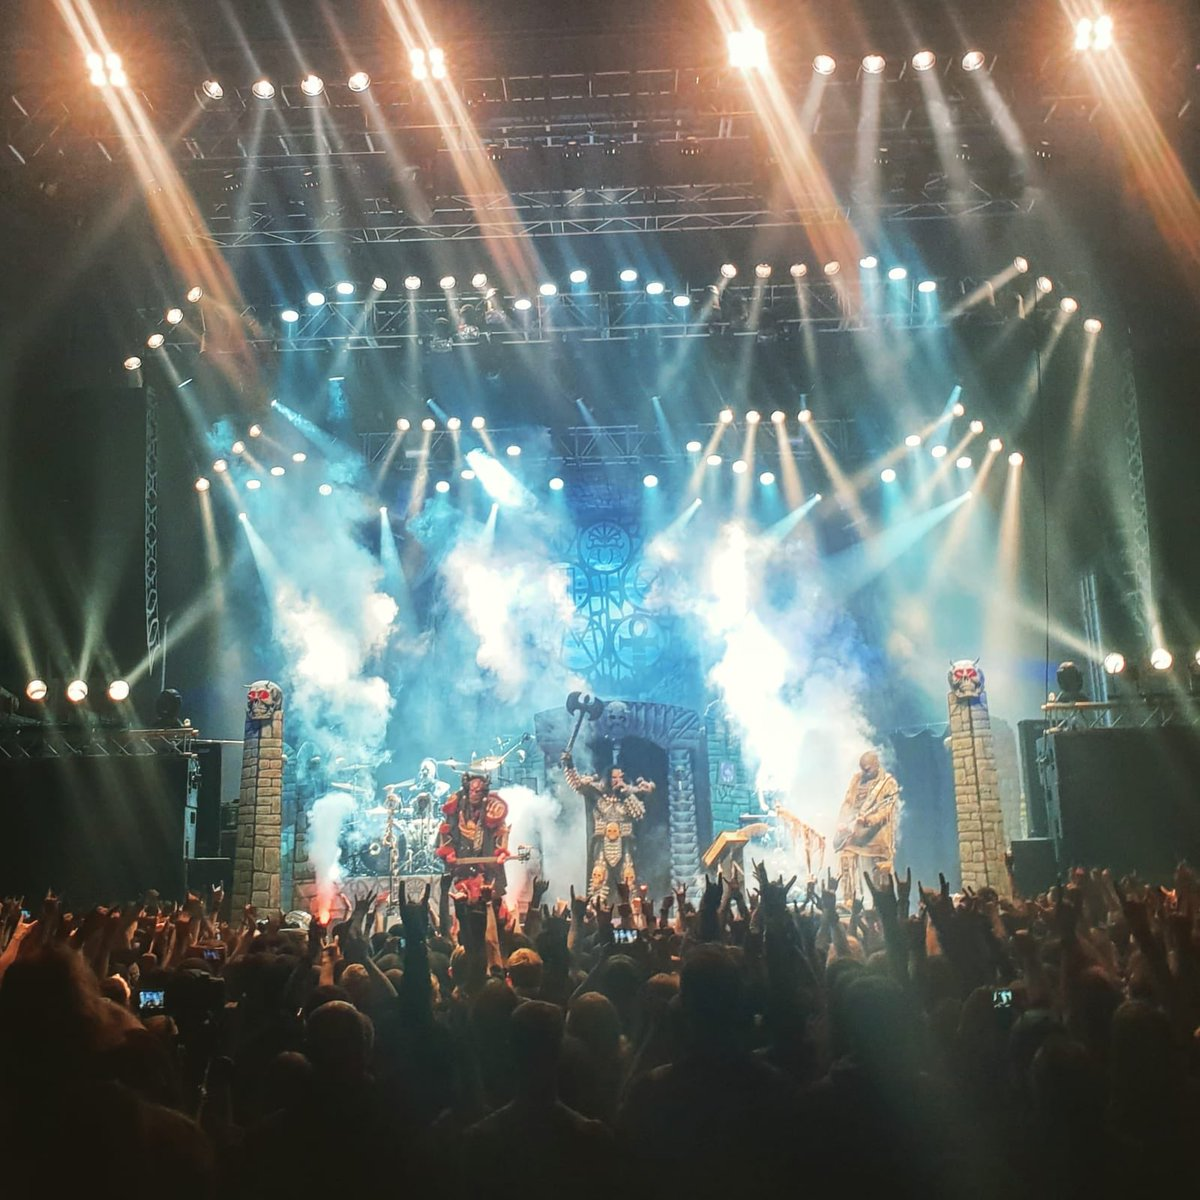 Russia are you ready?! The Sextourcism continutes in St. Petersburg today!  #lordi #sexorcism #russia #stpetersburg #live #metal #hardrock #music #monsters #horror #finland #music #sextourcism https://t.co/gKl14SouO0